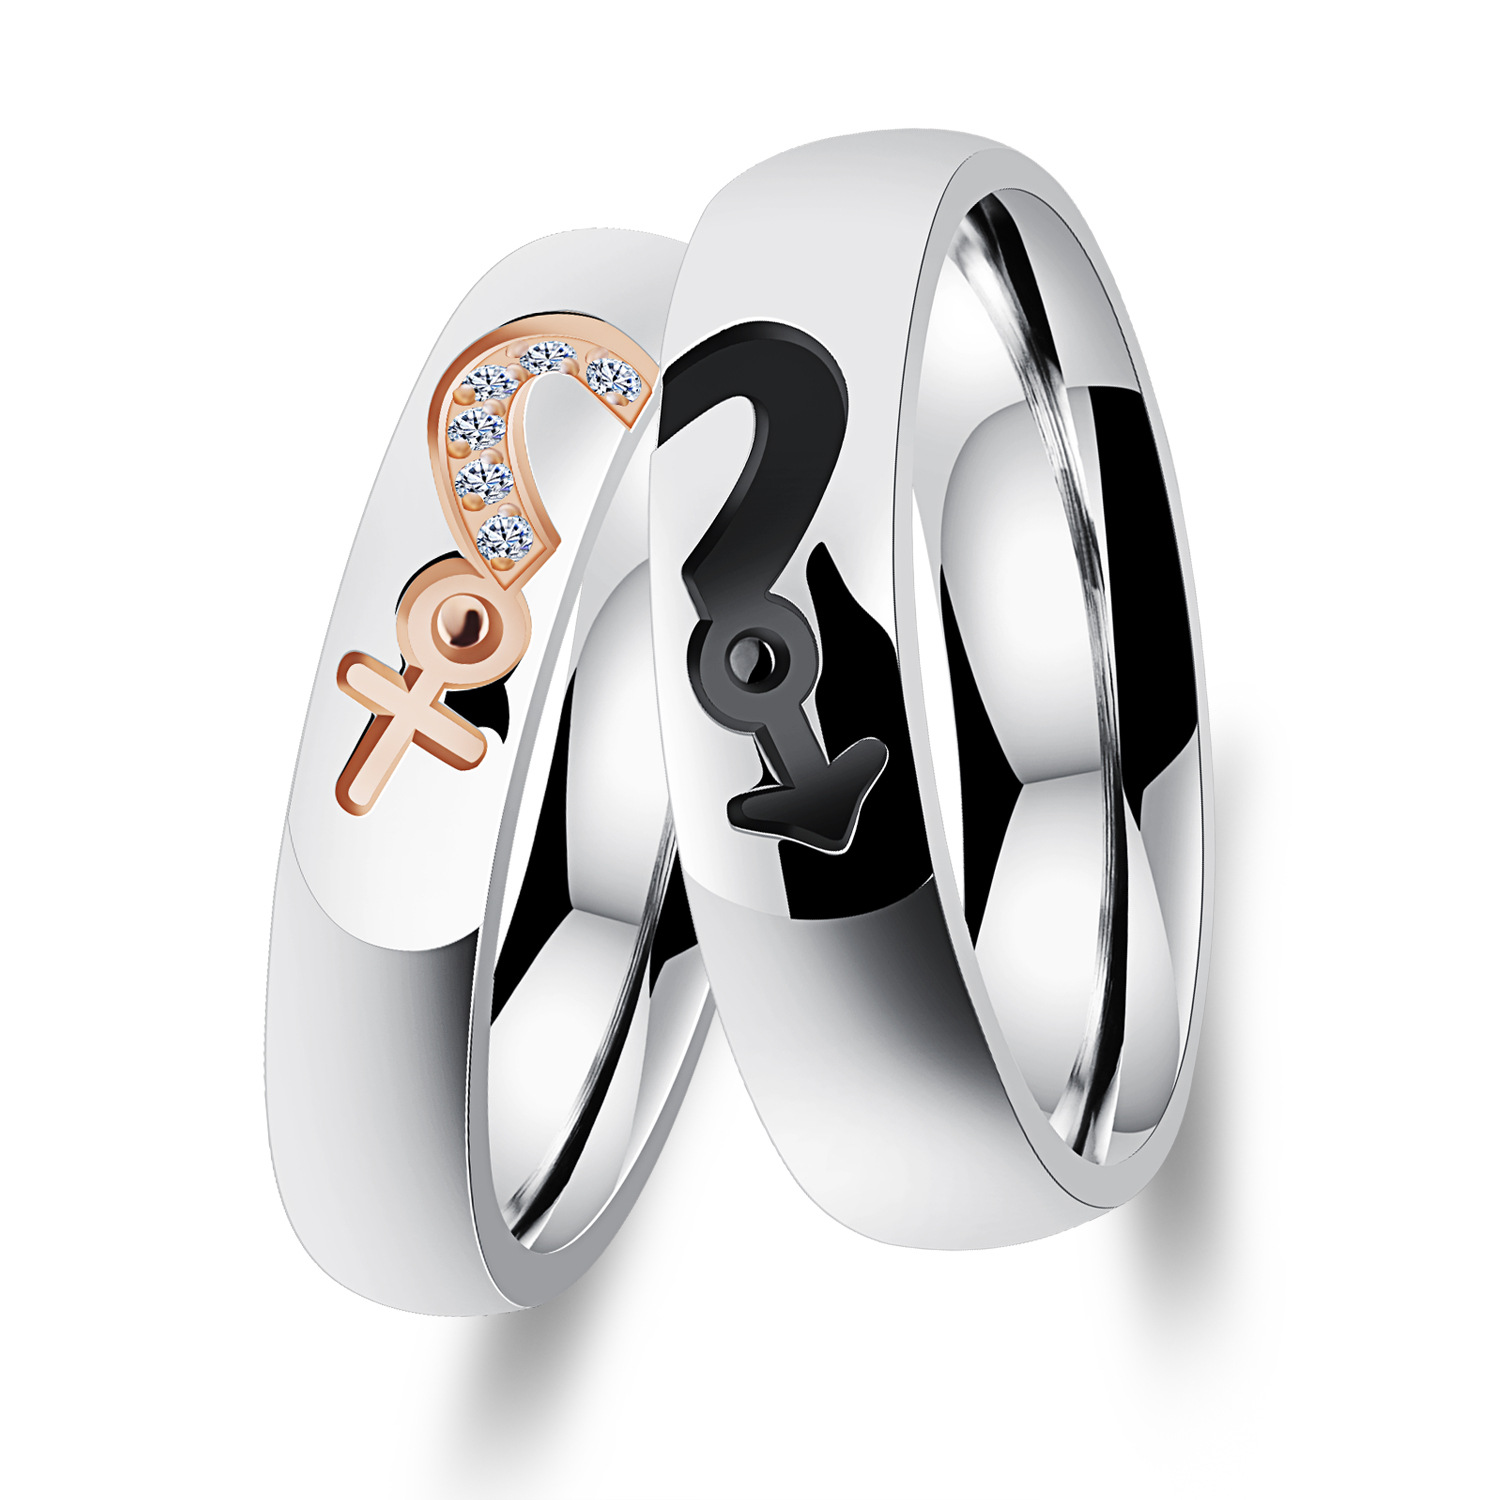 Love puzzle micro inlaid with diamond romantic titanium steel food ring for men and women symbol symbol couple ring Valentines Day gift